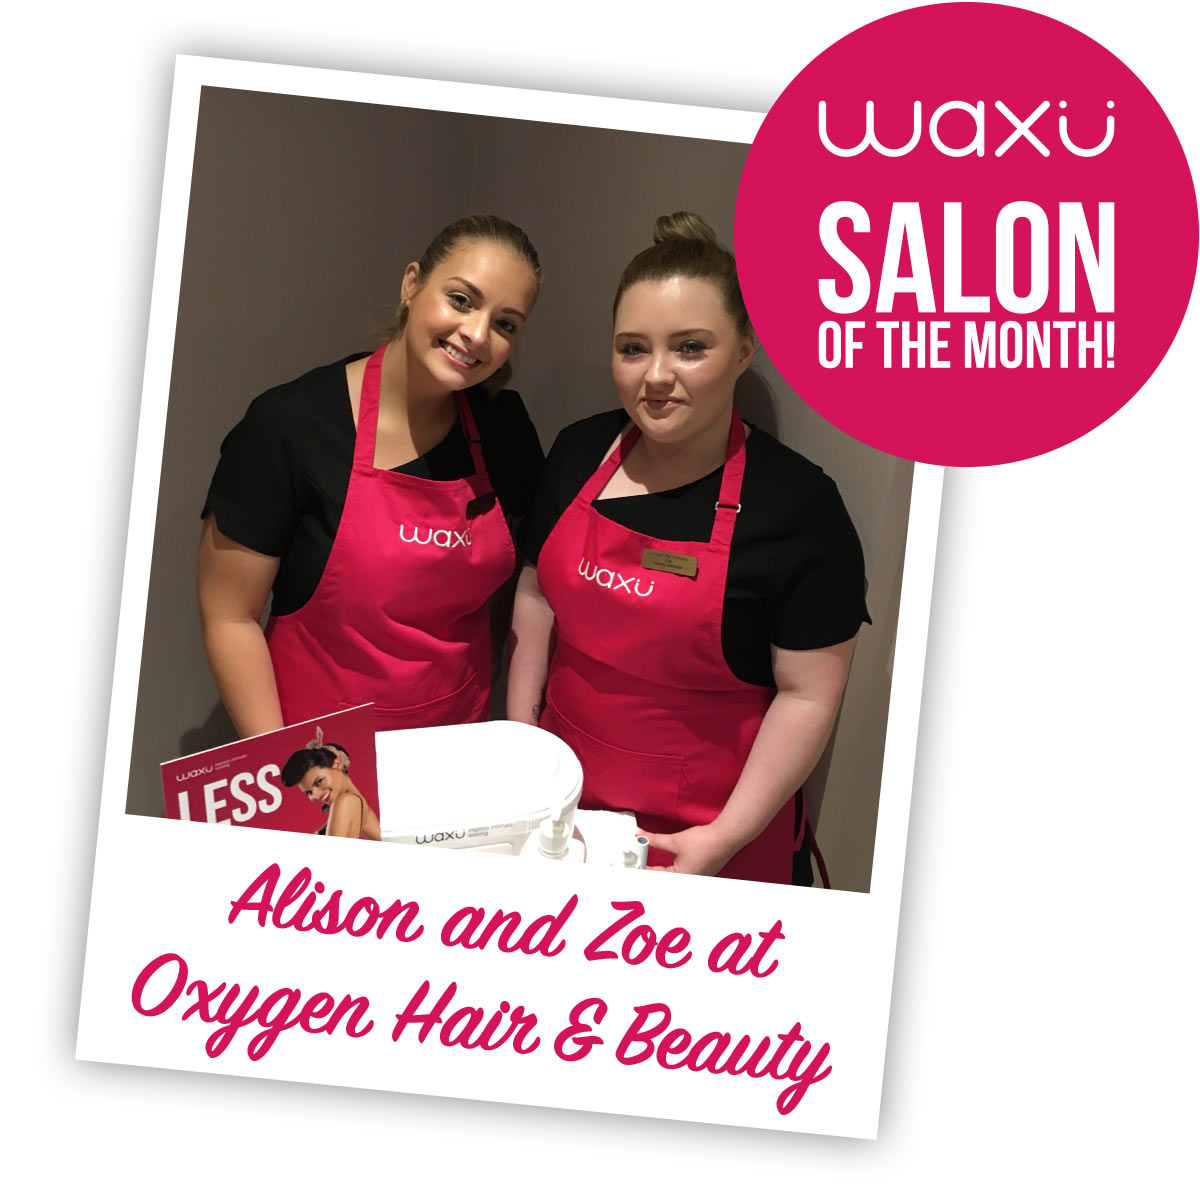 Waxu-Salon-of-the-Month-September-2017